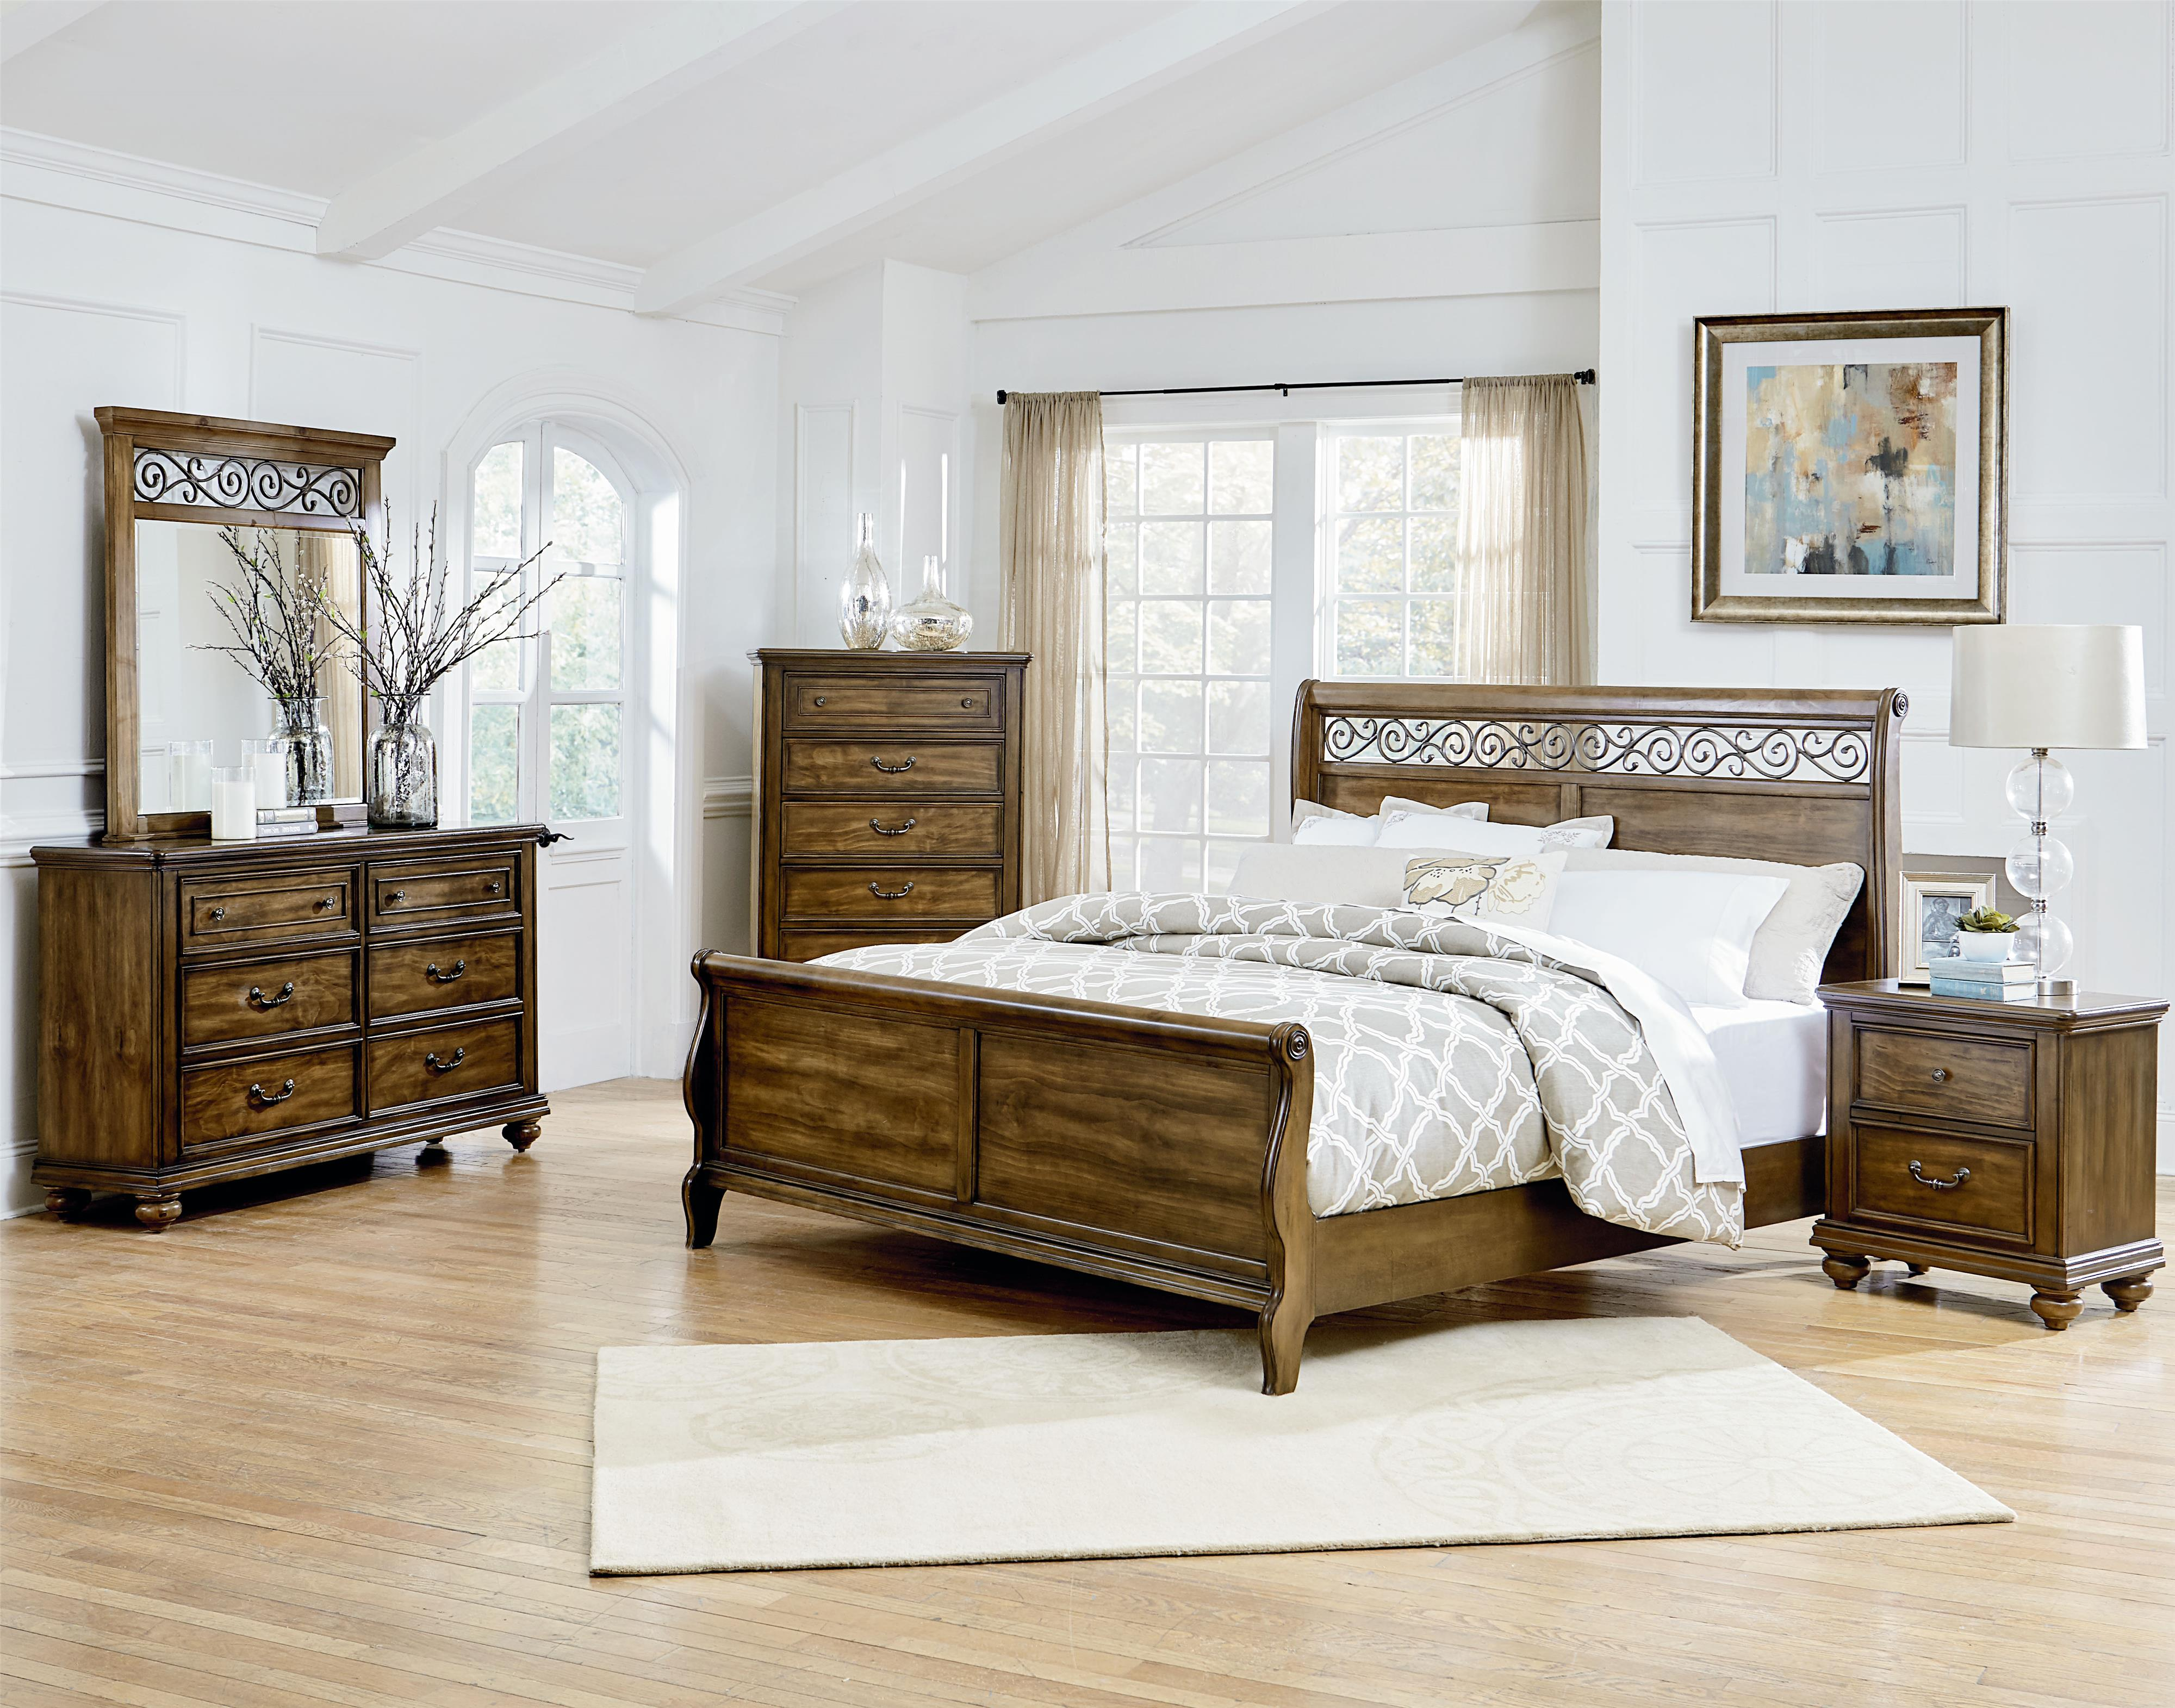 Queen Bedroom Group By Standard Furniture Wolf And Gardiner Wolf Furniture